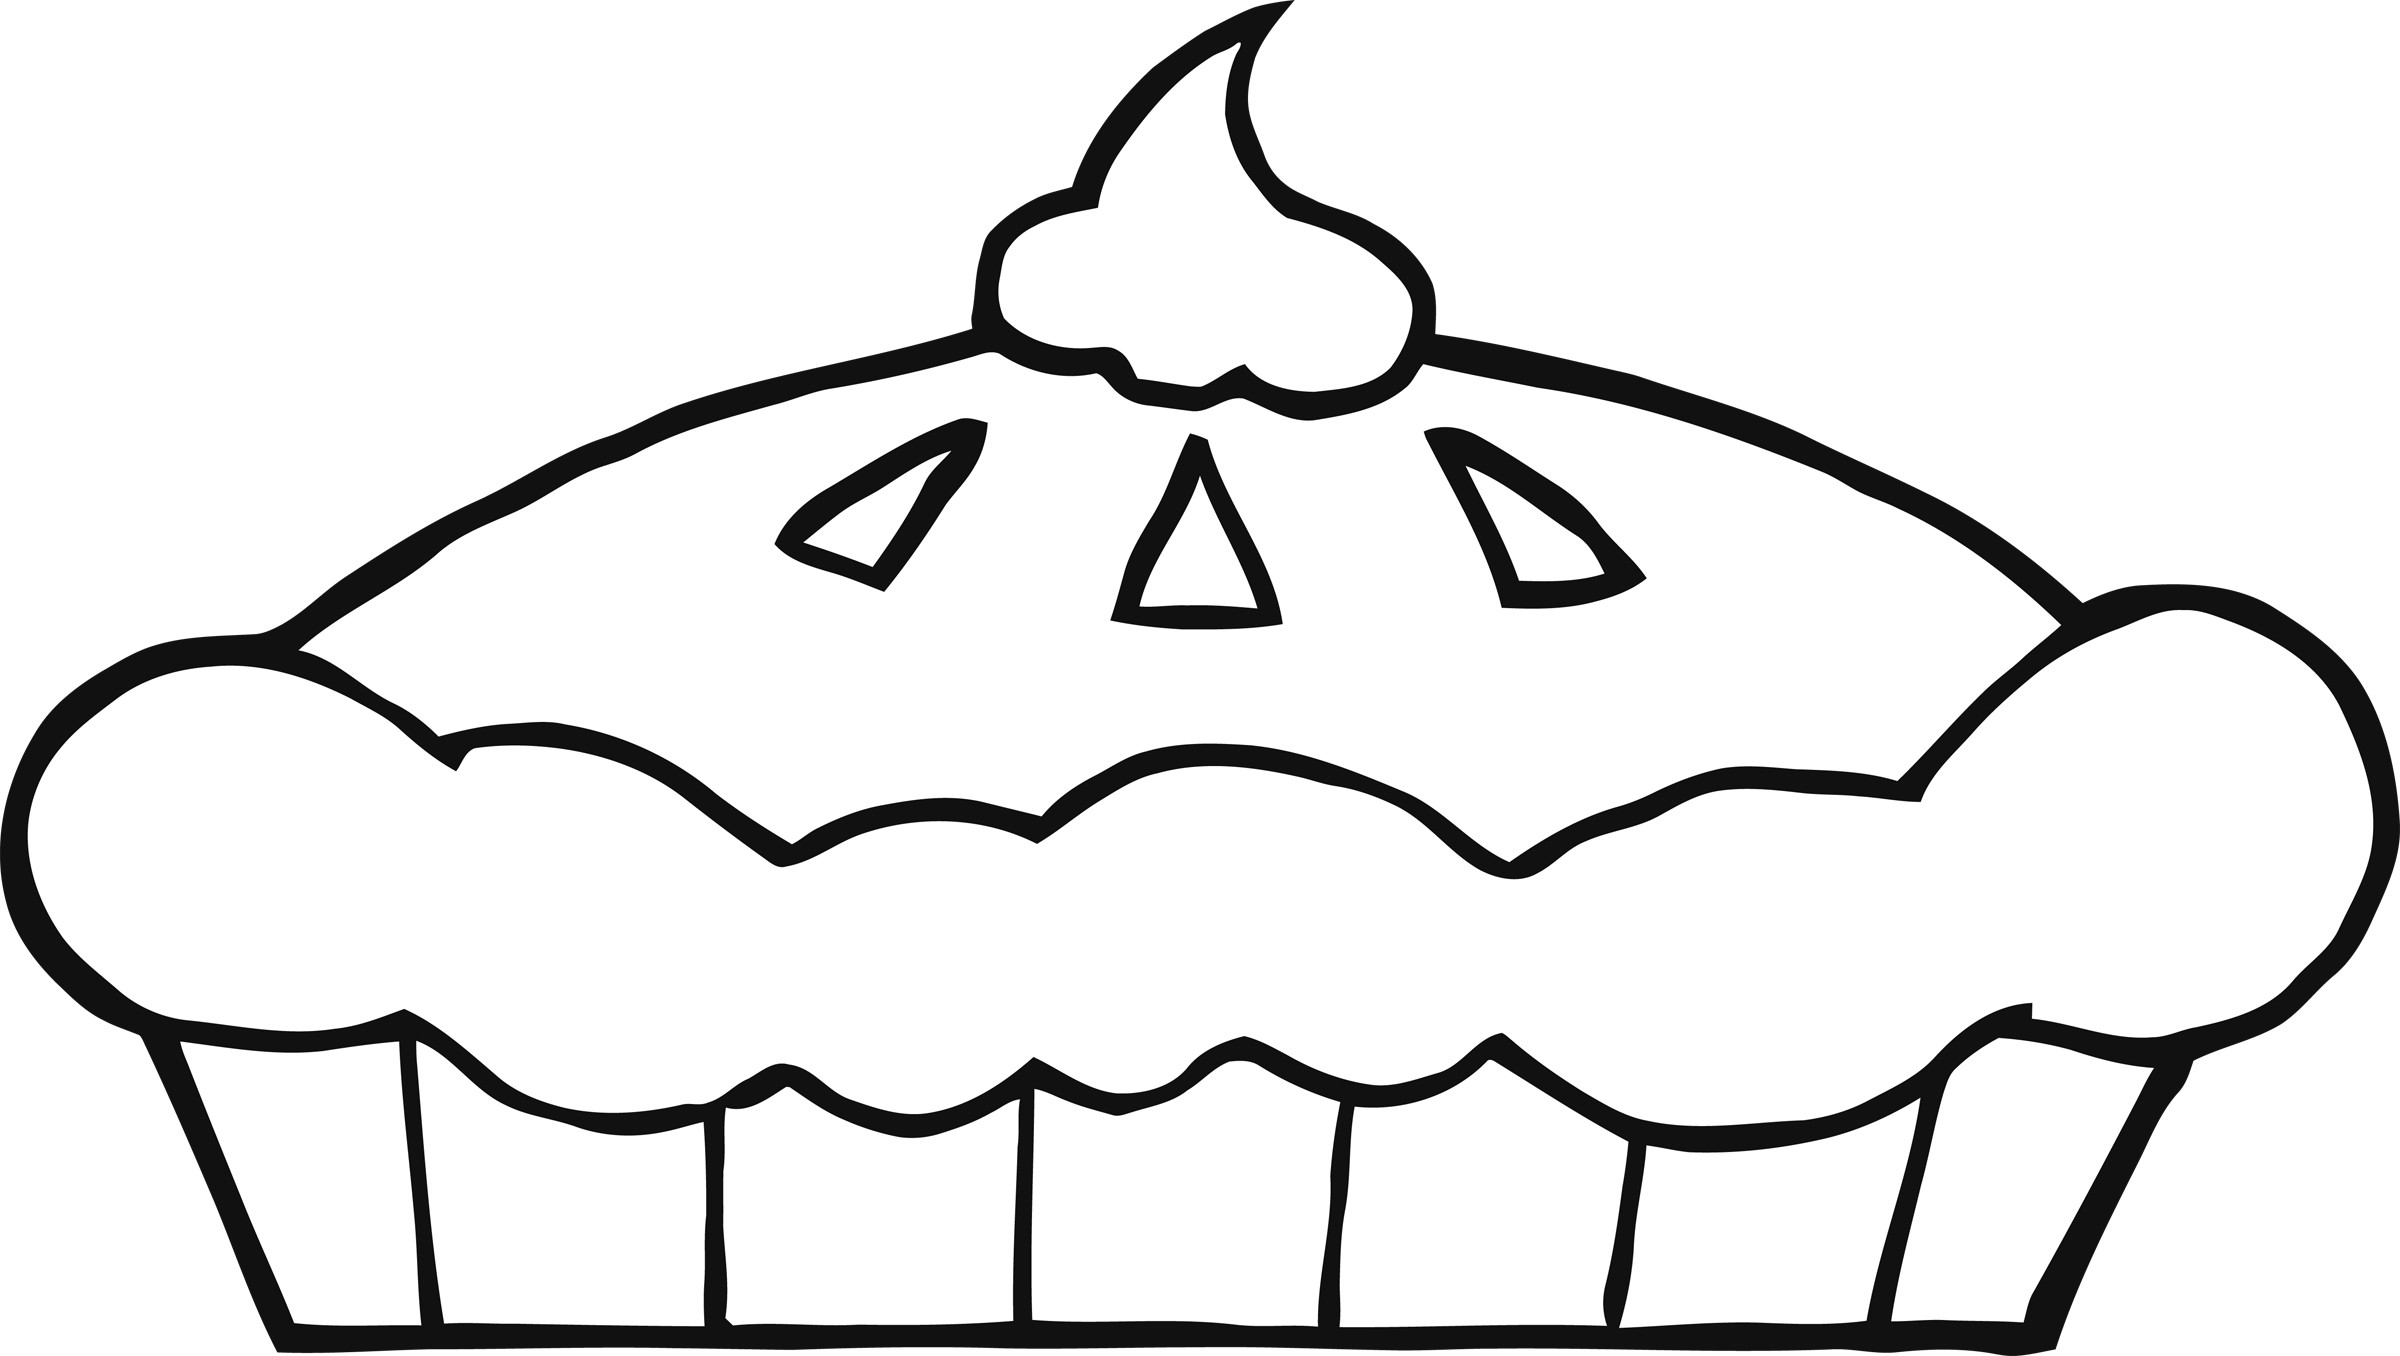 Pie Clip Art Black And White | Clipart Panda - Free ...